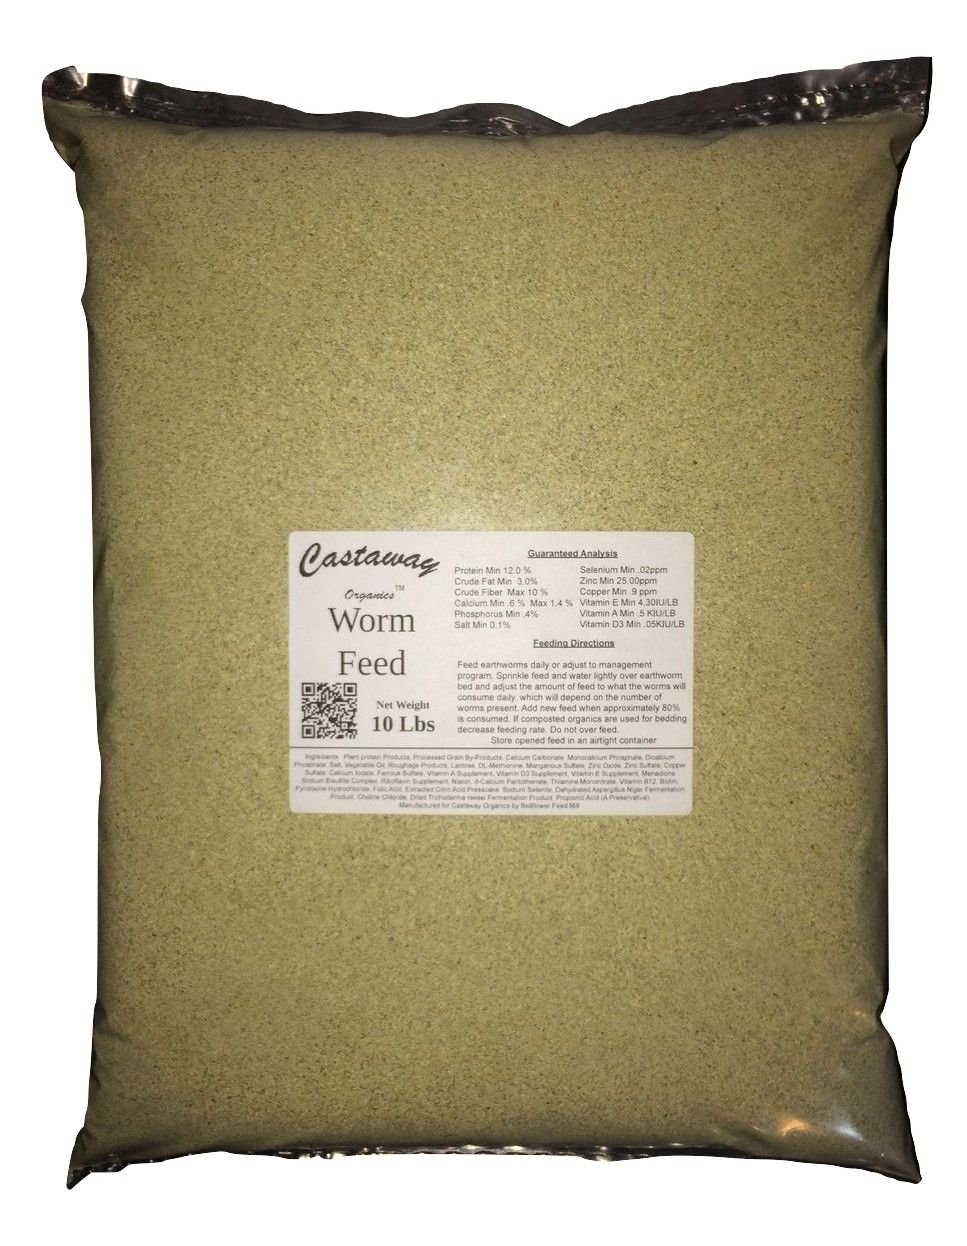 Castaway Organics Worm Feed (Worm Chow, Food for All Composting Worms and Bait Worms) (10 lbs)